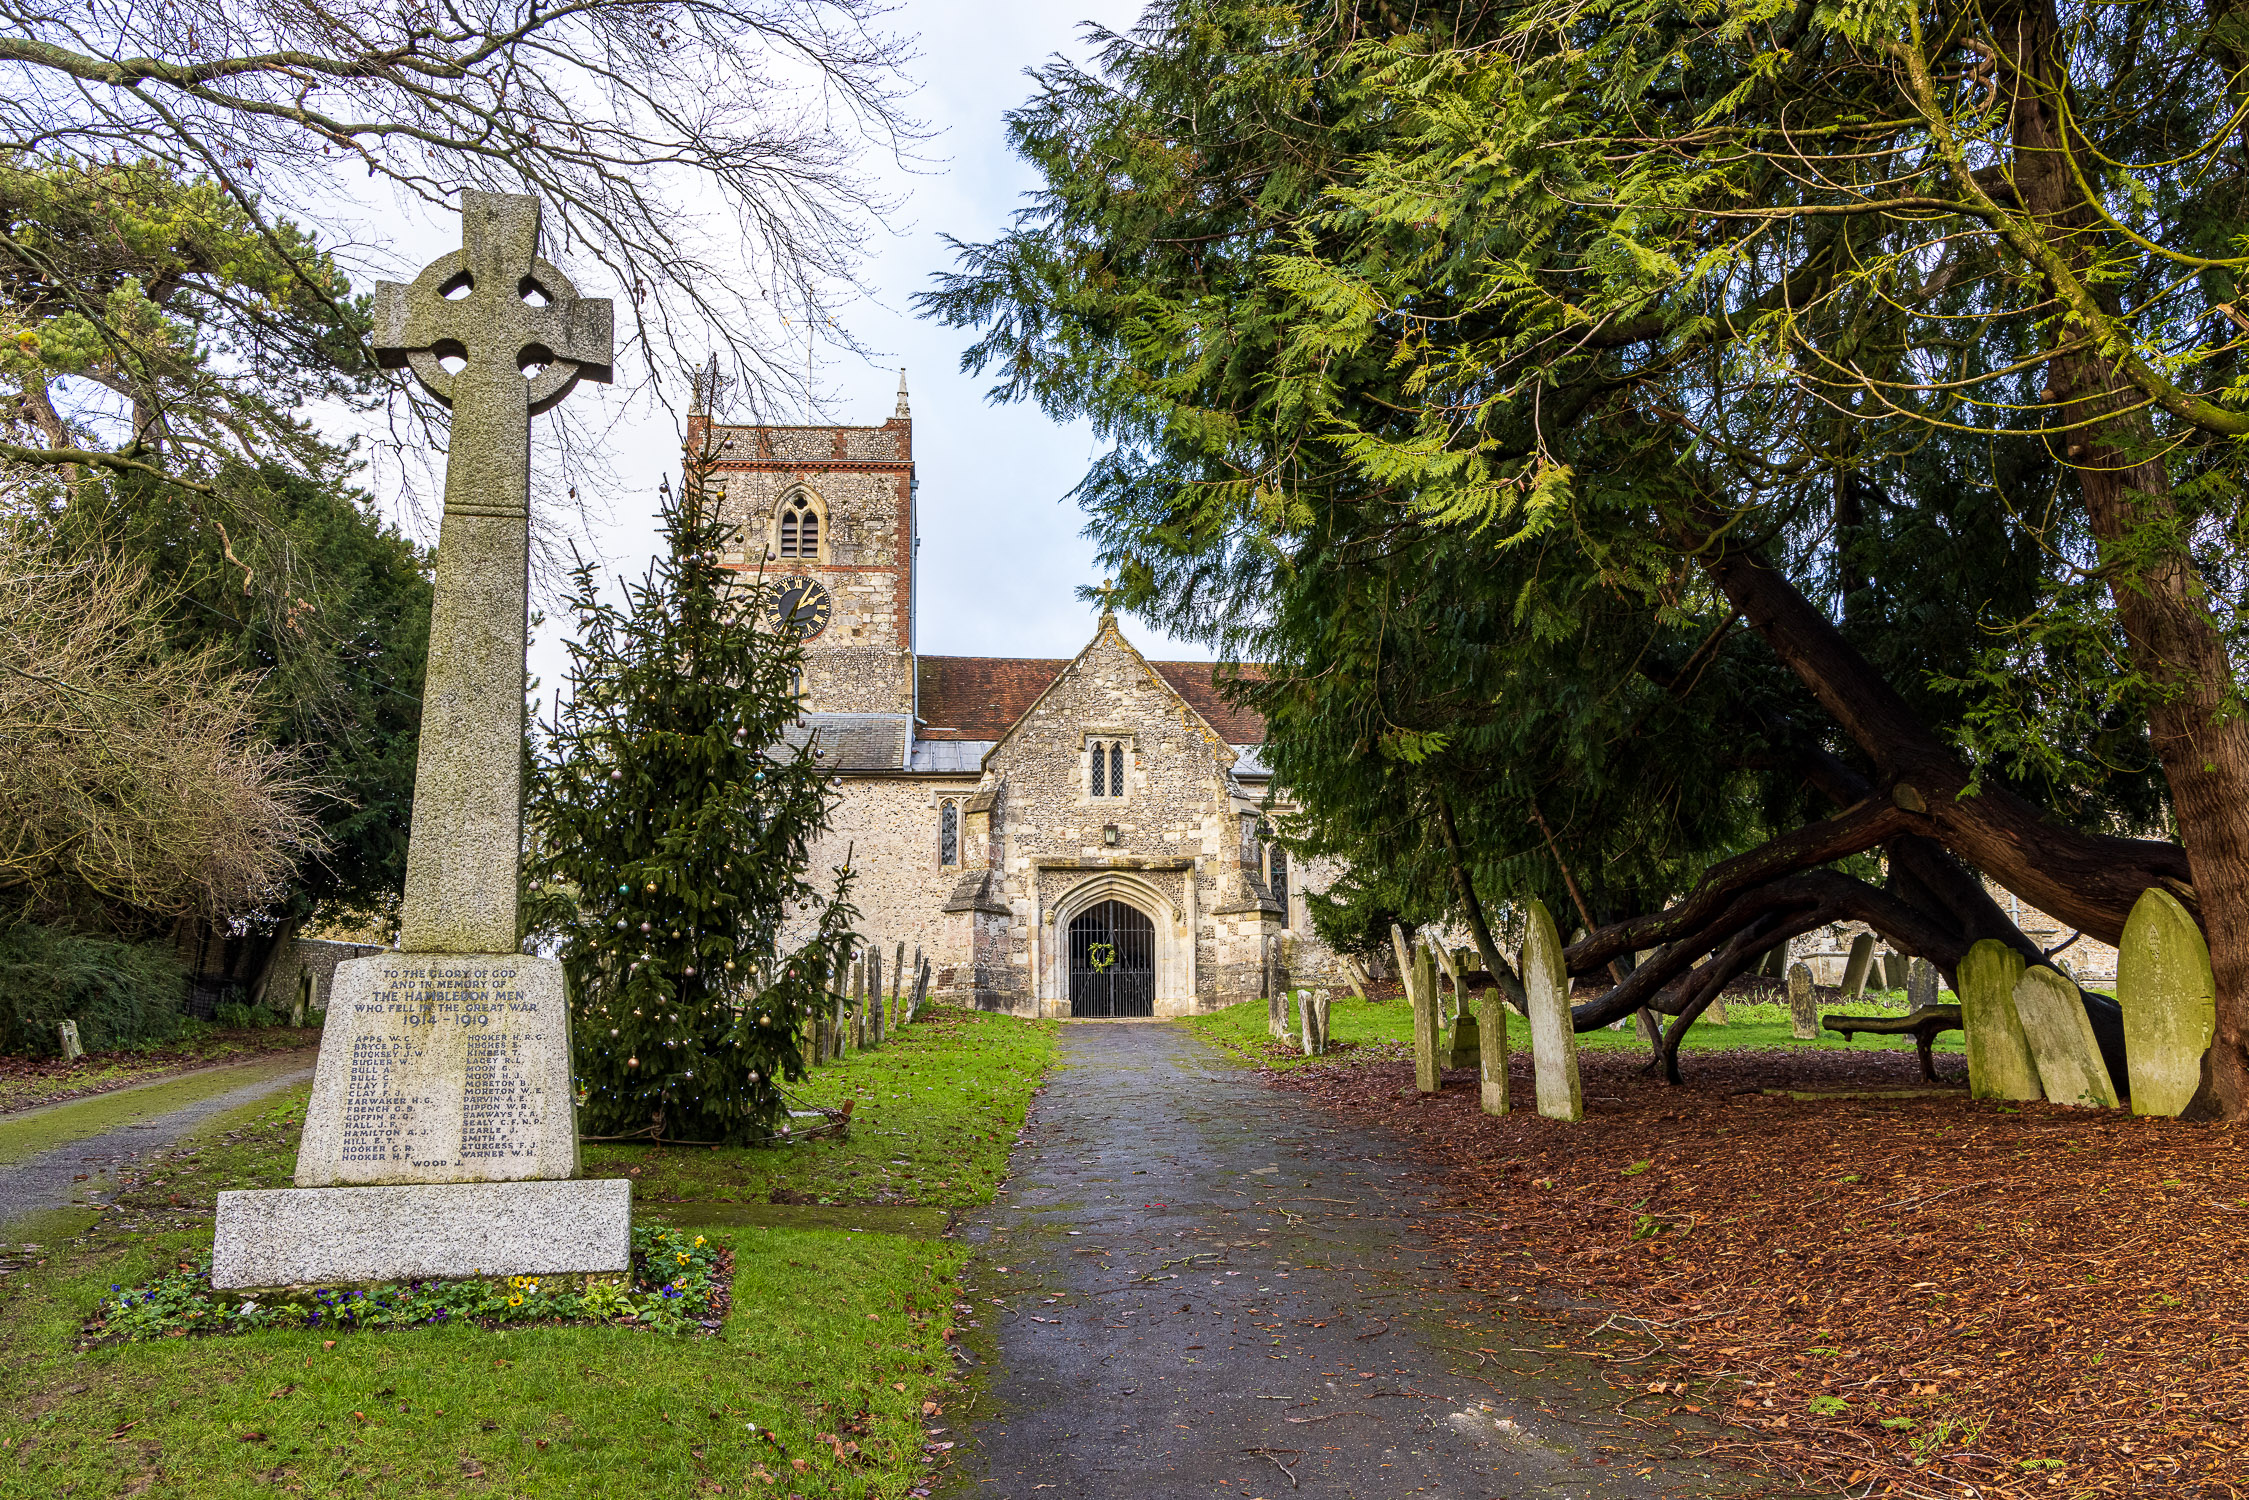 Approach to the Church of St. Peter and St. Paul, Hambledon